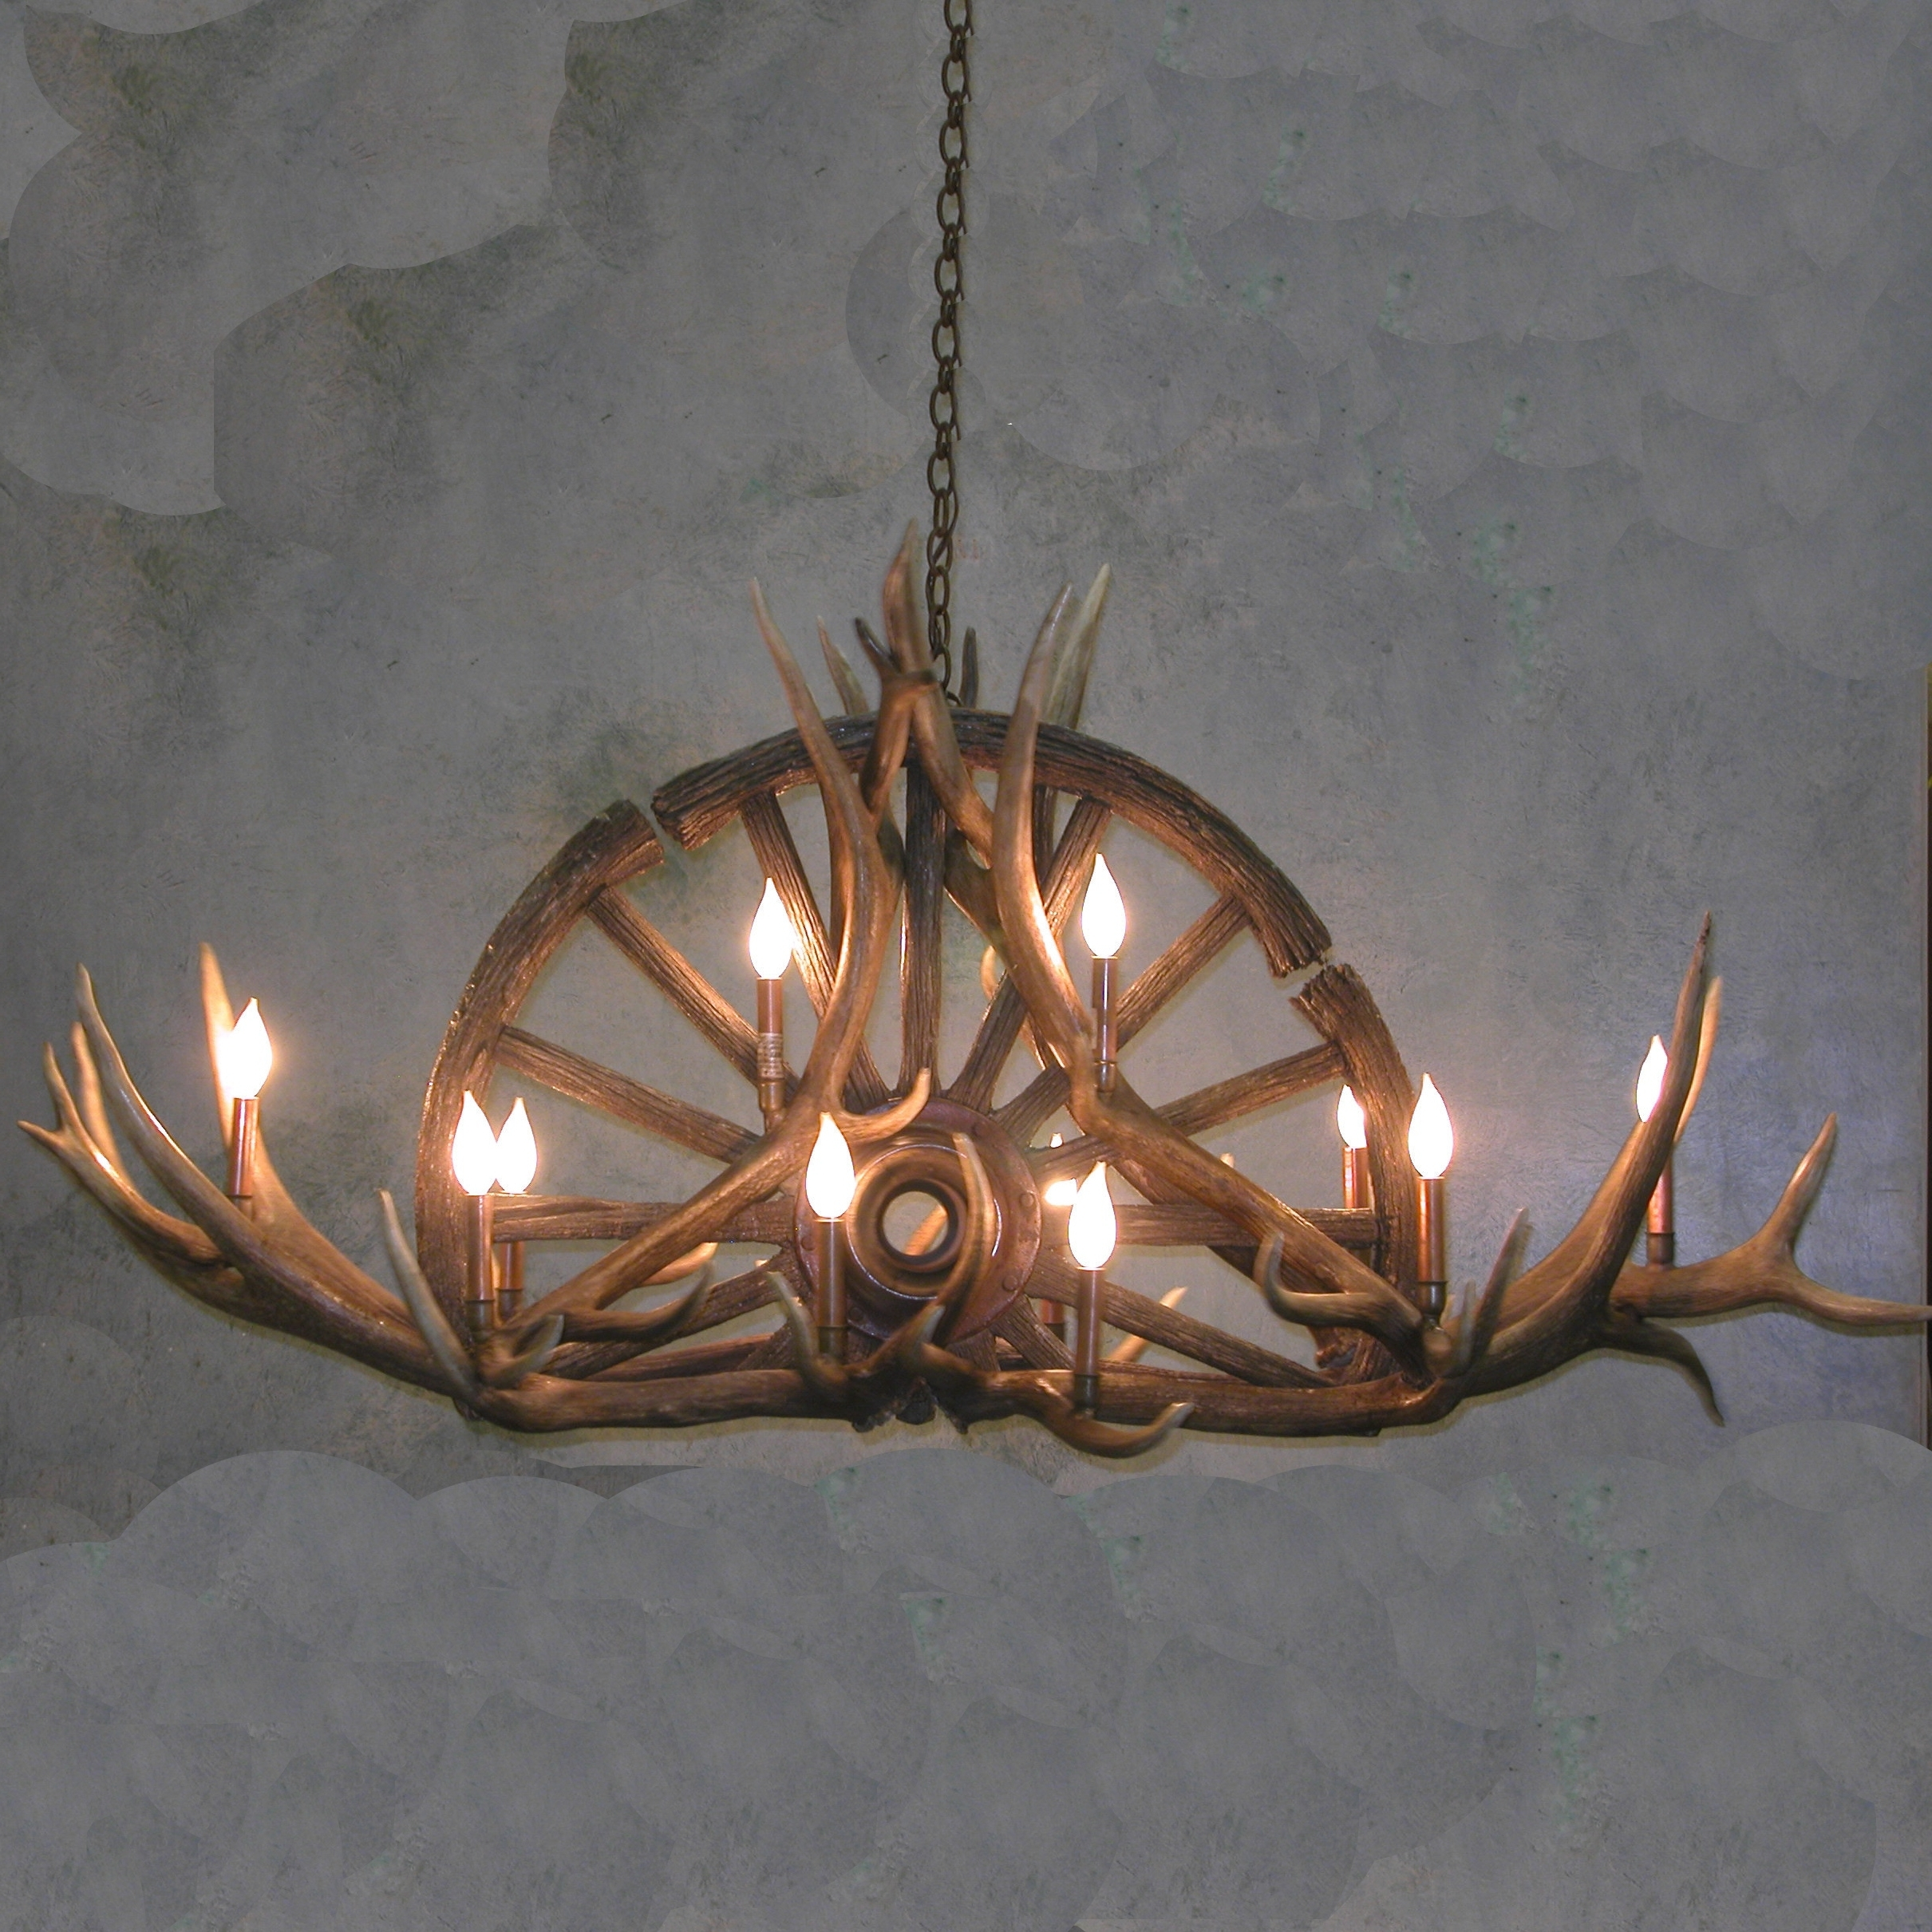 Modern Antler Chandelier With Regard To Trendy Wagon Wheel Antler Chandelier (View 10 of 20)